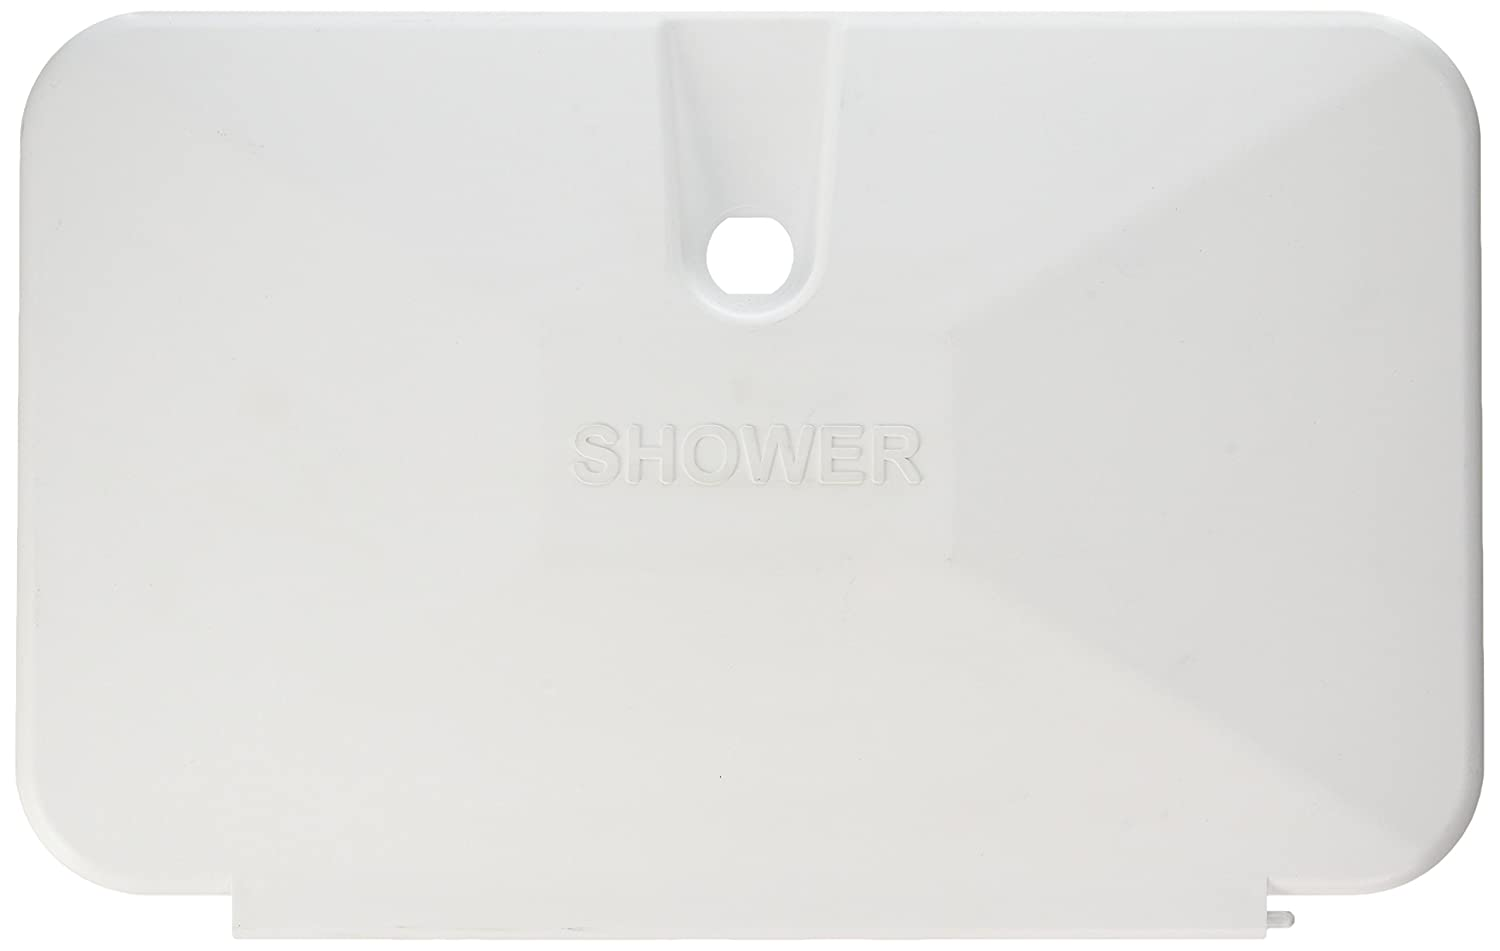 JR Products 620PW 620PW Replacement Door for Exterior Shower 1207.1049